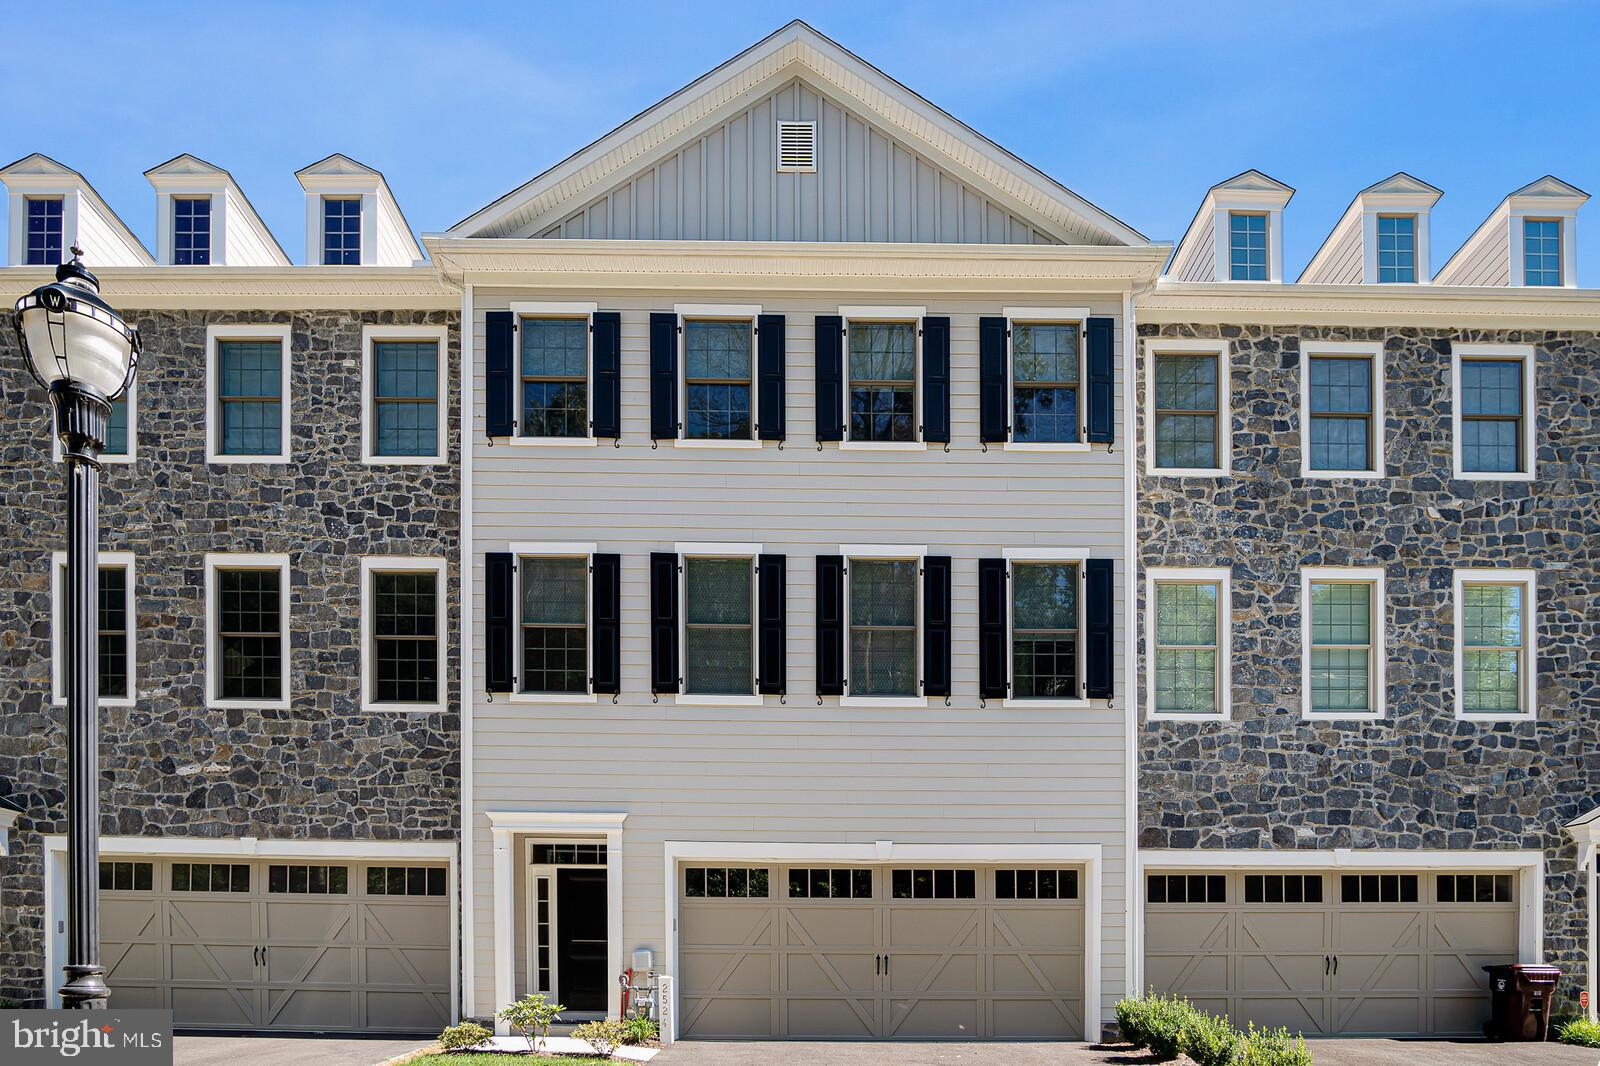 Savor the tranquility of the Brandywine River views and the convenience of living in the Highlands! This stunning home offers easy, walkable access to all the best features of both. Coupled with your very own private drive & garage you'll never have to worry about where to park! Built in 2019 by Montchanin Builders, this 3-story townhome is superbly constructed and designed with numerous upgrades throughout! The great room design offers the popular open concept with 10 ft ceilings, crown molding, and beautiful upgraded hardwood flooring throughout. The gourmet kitchen offers quartz countertops, stainless appliances, pantry, and an oversized 12 foot island with ample seating. There's a perfectly sized pocket office located off the kitchen, charming powder room and great room gas fireplace plus glass slider to a Trex composite deck facing east with views of the river (and stunning sunrises)! The spacious 3rd floor main suite has crown molding, luxurious bathroom with gorgeous tile, double vanity, upgraded frameless glass shower, and 2 walk-in closets, 1 that has been customized by Taylored Living into a dream closet. Two more bedrooms and full bath plus a laundry room complete this level with 9 ft ceilings. The main level offered 9 ft ceilings, access to the 2-car garage and a bonus space that can be finished to add more living space. Last but definitely not least, the basement comes equipped with an egress and plenty of storage.  Custom lighting, motorized blinds, hardwired Ethernet in family room/all bedrooms, and chic but neutral colors complete this amazing home!